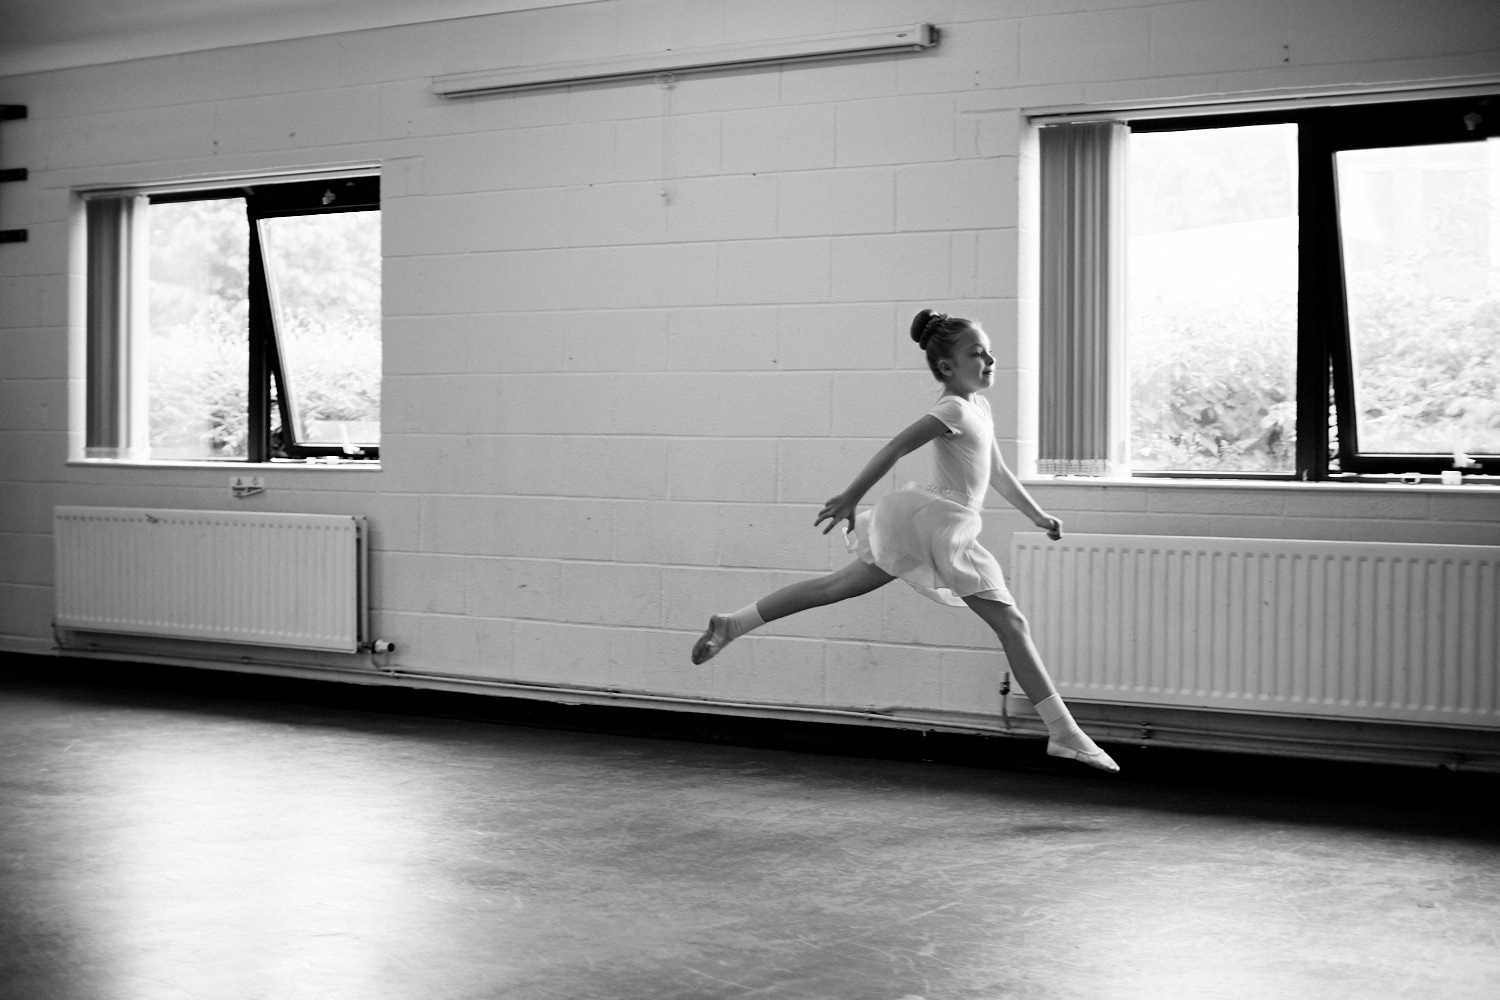 A young ballet dancer leaping through the air in black and white